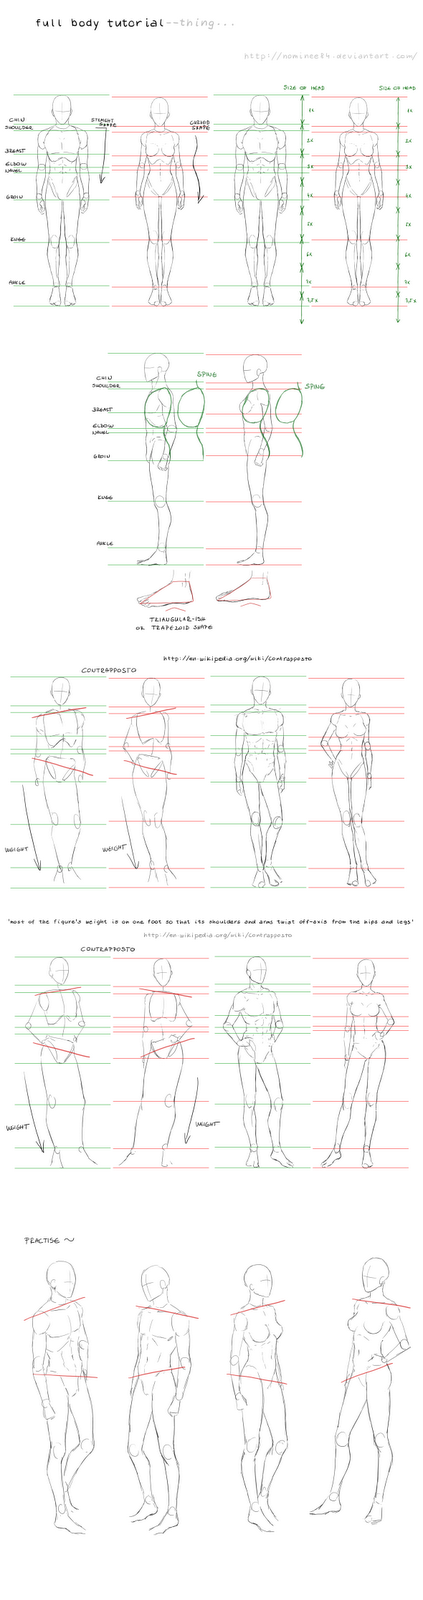 full_body_tutorial_by_nominee84-d30o4kv.png 423×1\'600 Pixel | Art ...